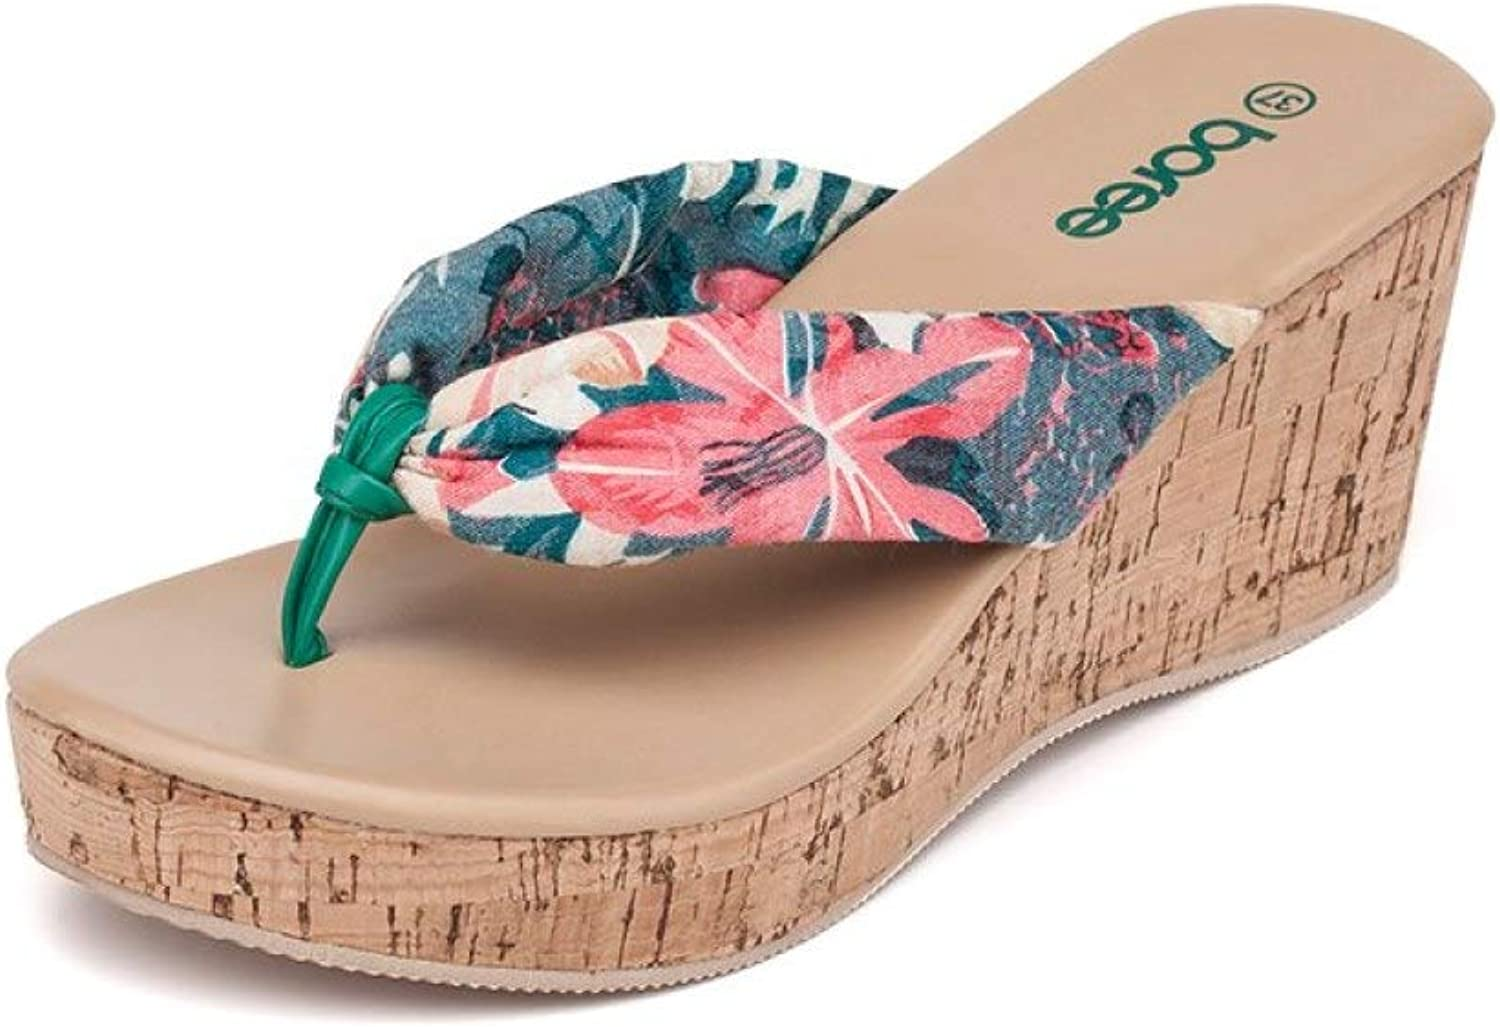 Womens Classics Printing Flip Flops Non-Slip Thick Soled Thong Sandals Wedge Platform Slipper